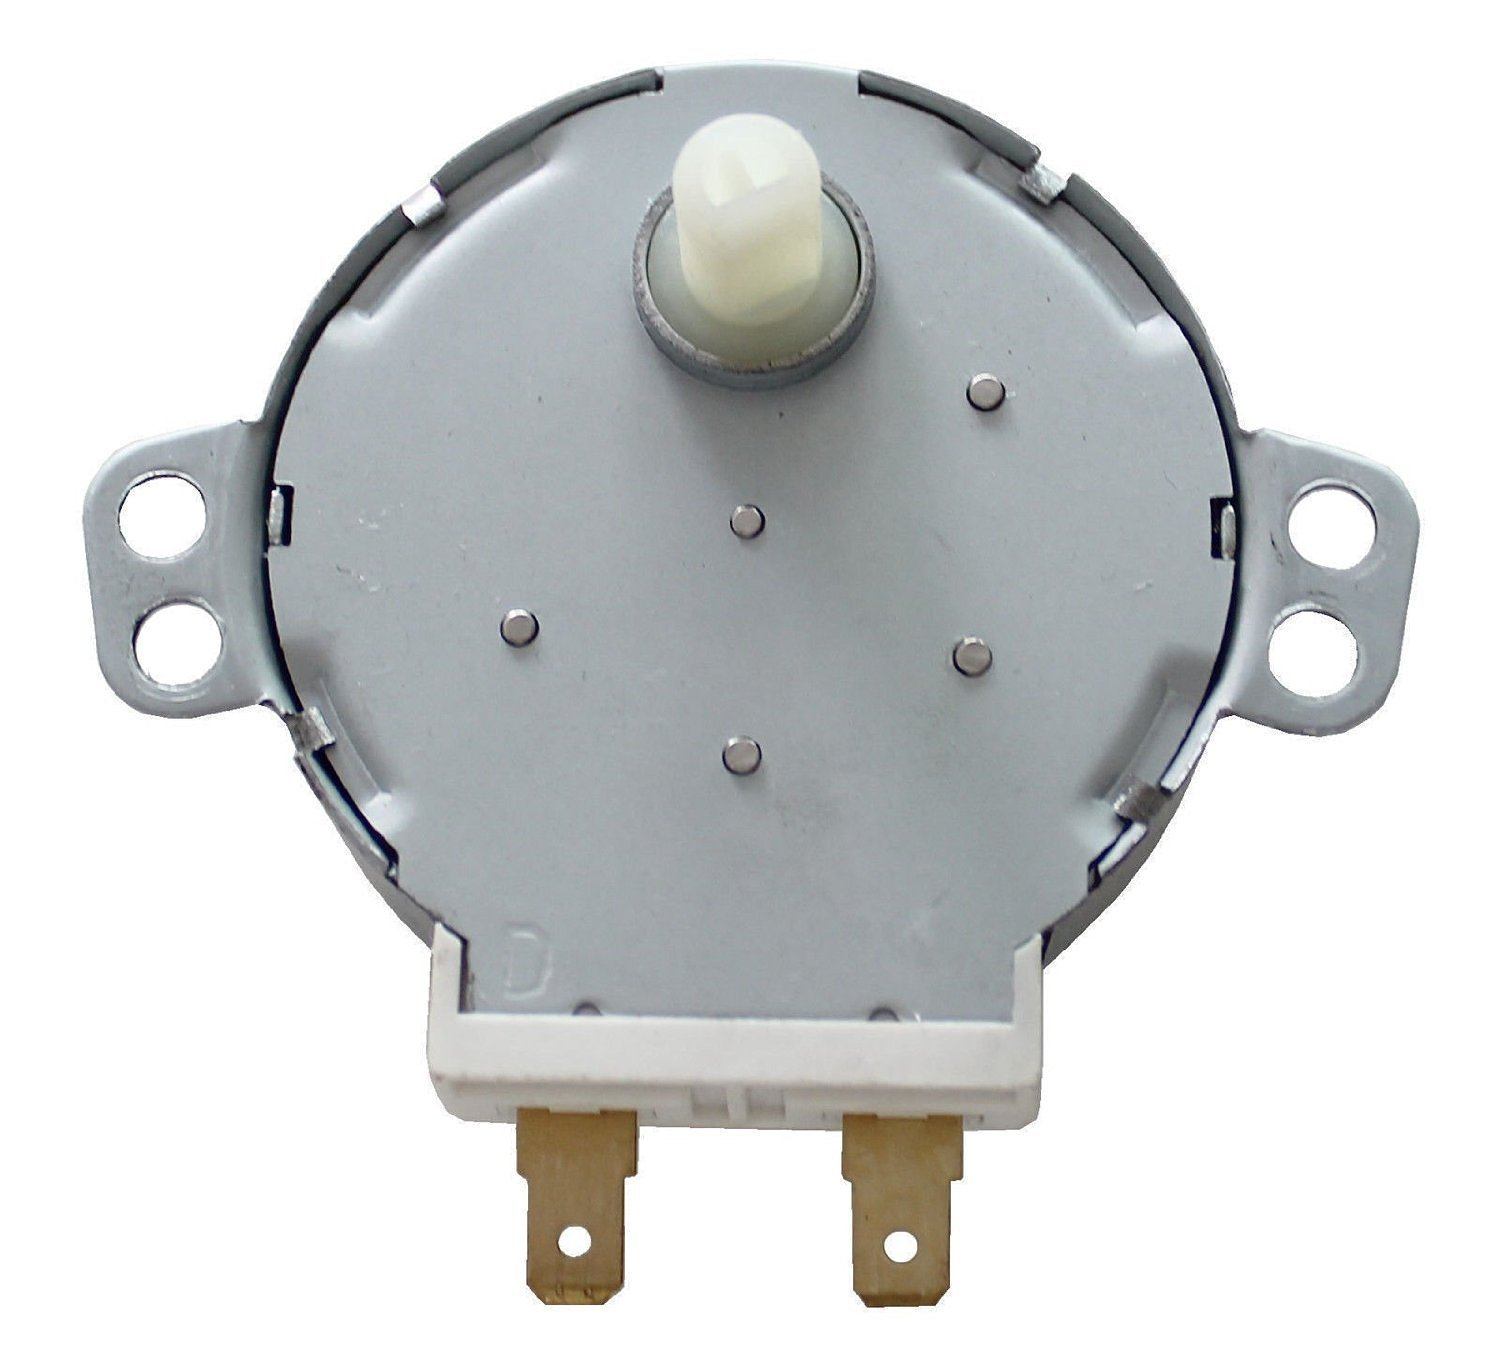 CCW for SHARP WHIRLPOOL min CW Microwave Turntable Replacement Synchronous Motor TYJ50-8A7F 2.5r